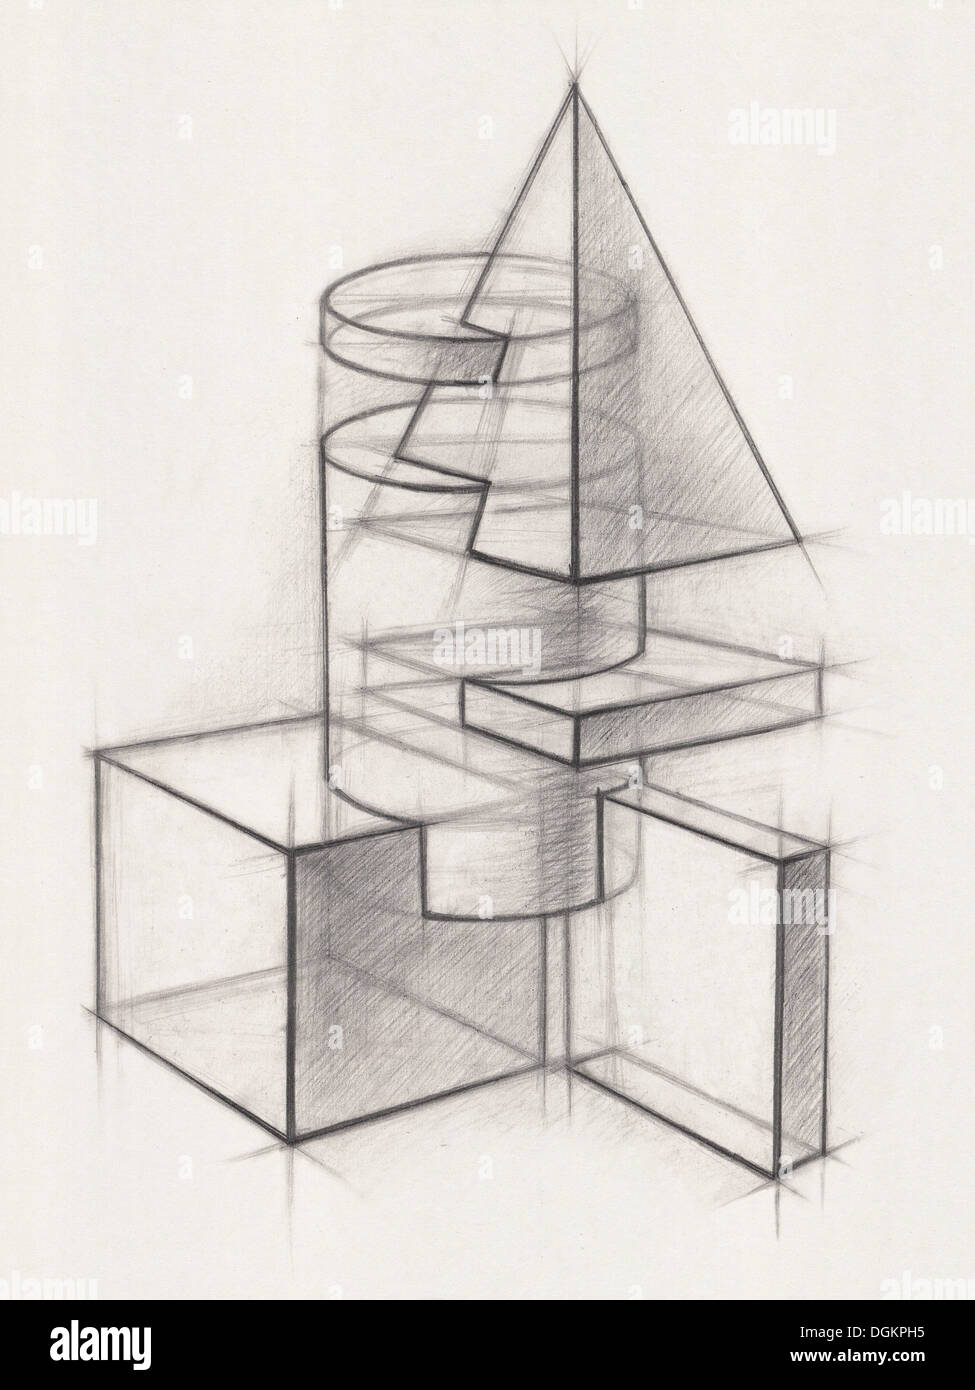 Illustration of geometric shapes it is a pencil drawing stock photo